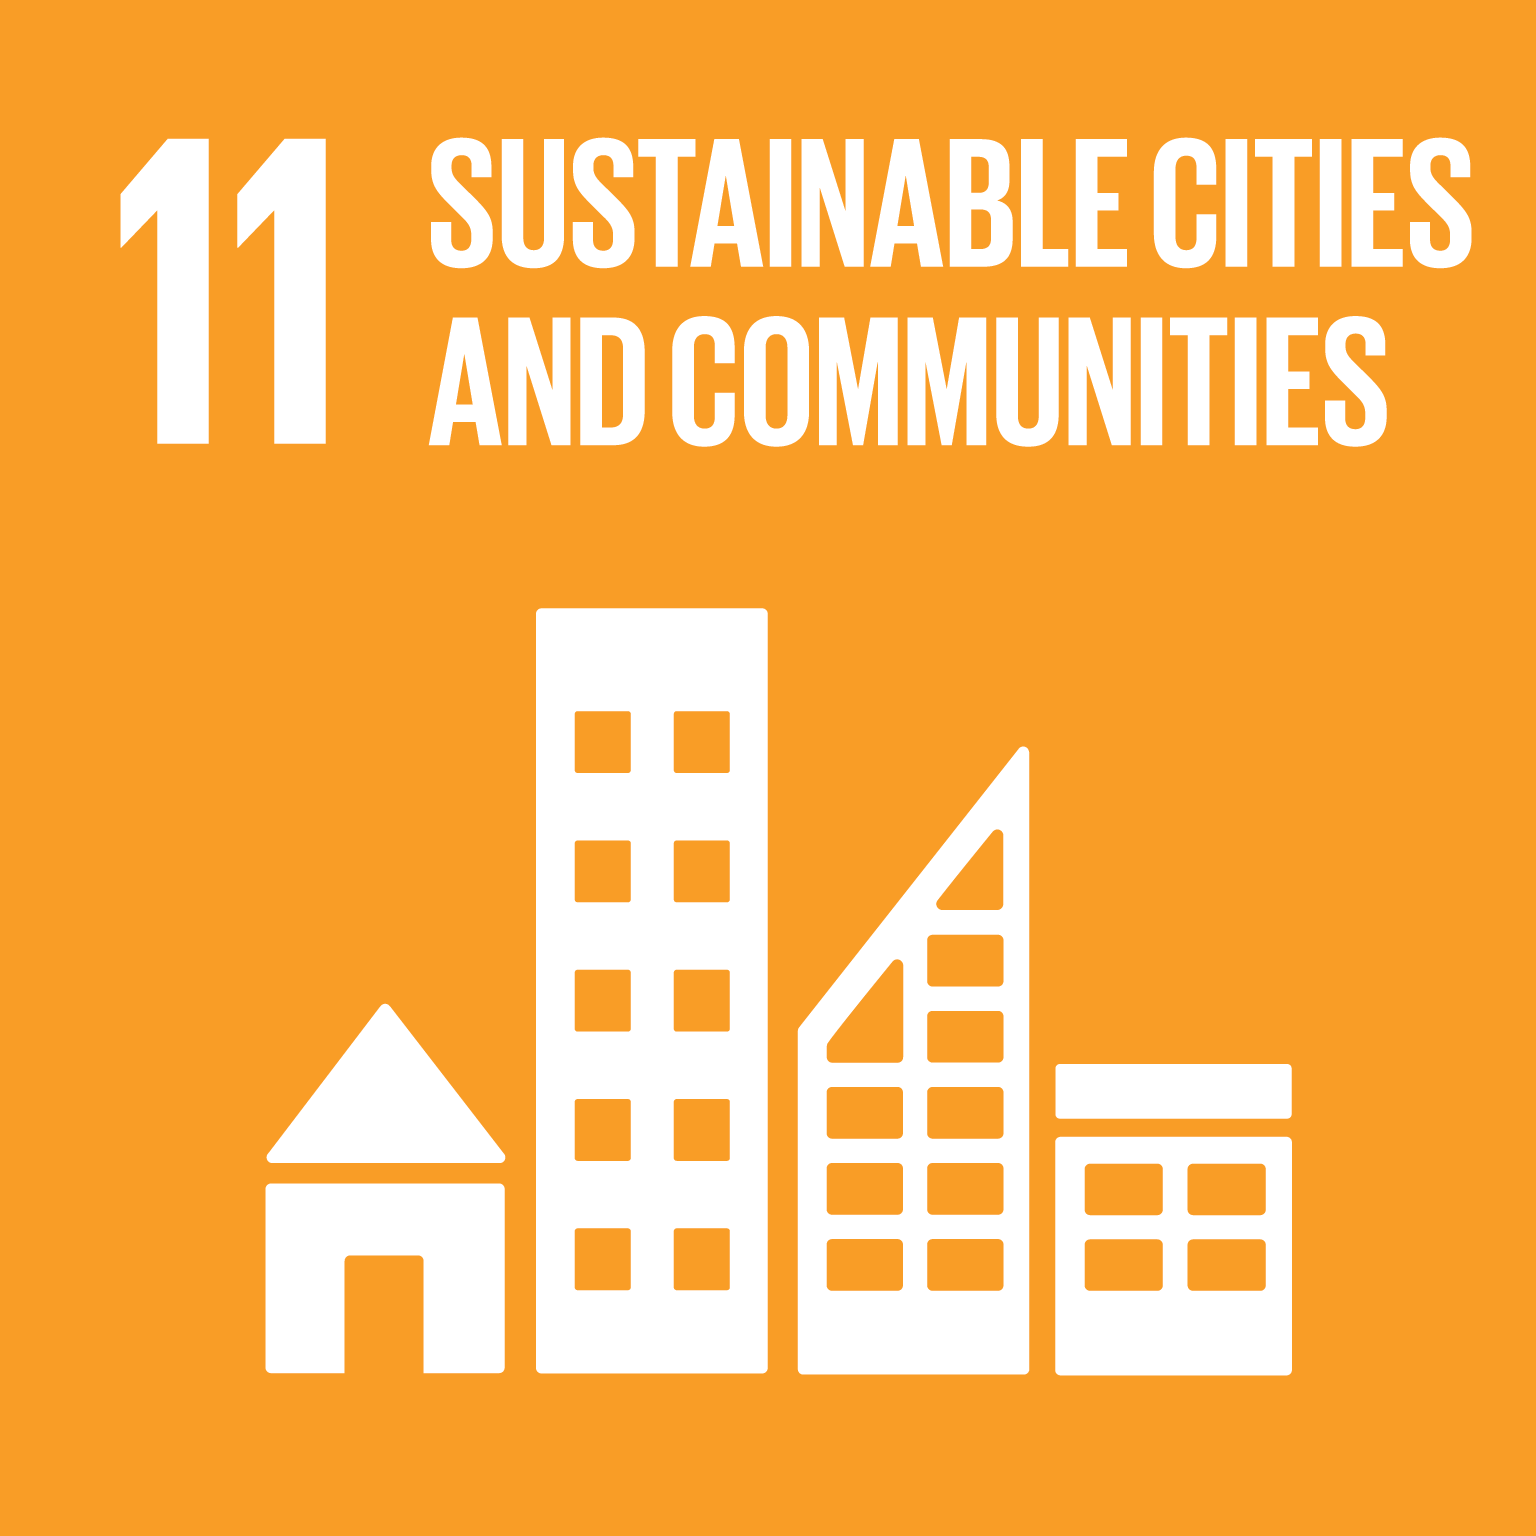 Icon for SDG 11 - sustainable cities and communities